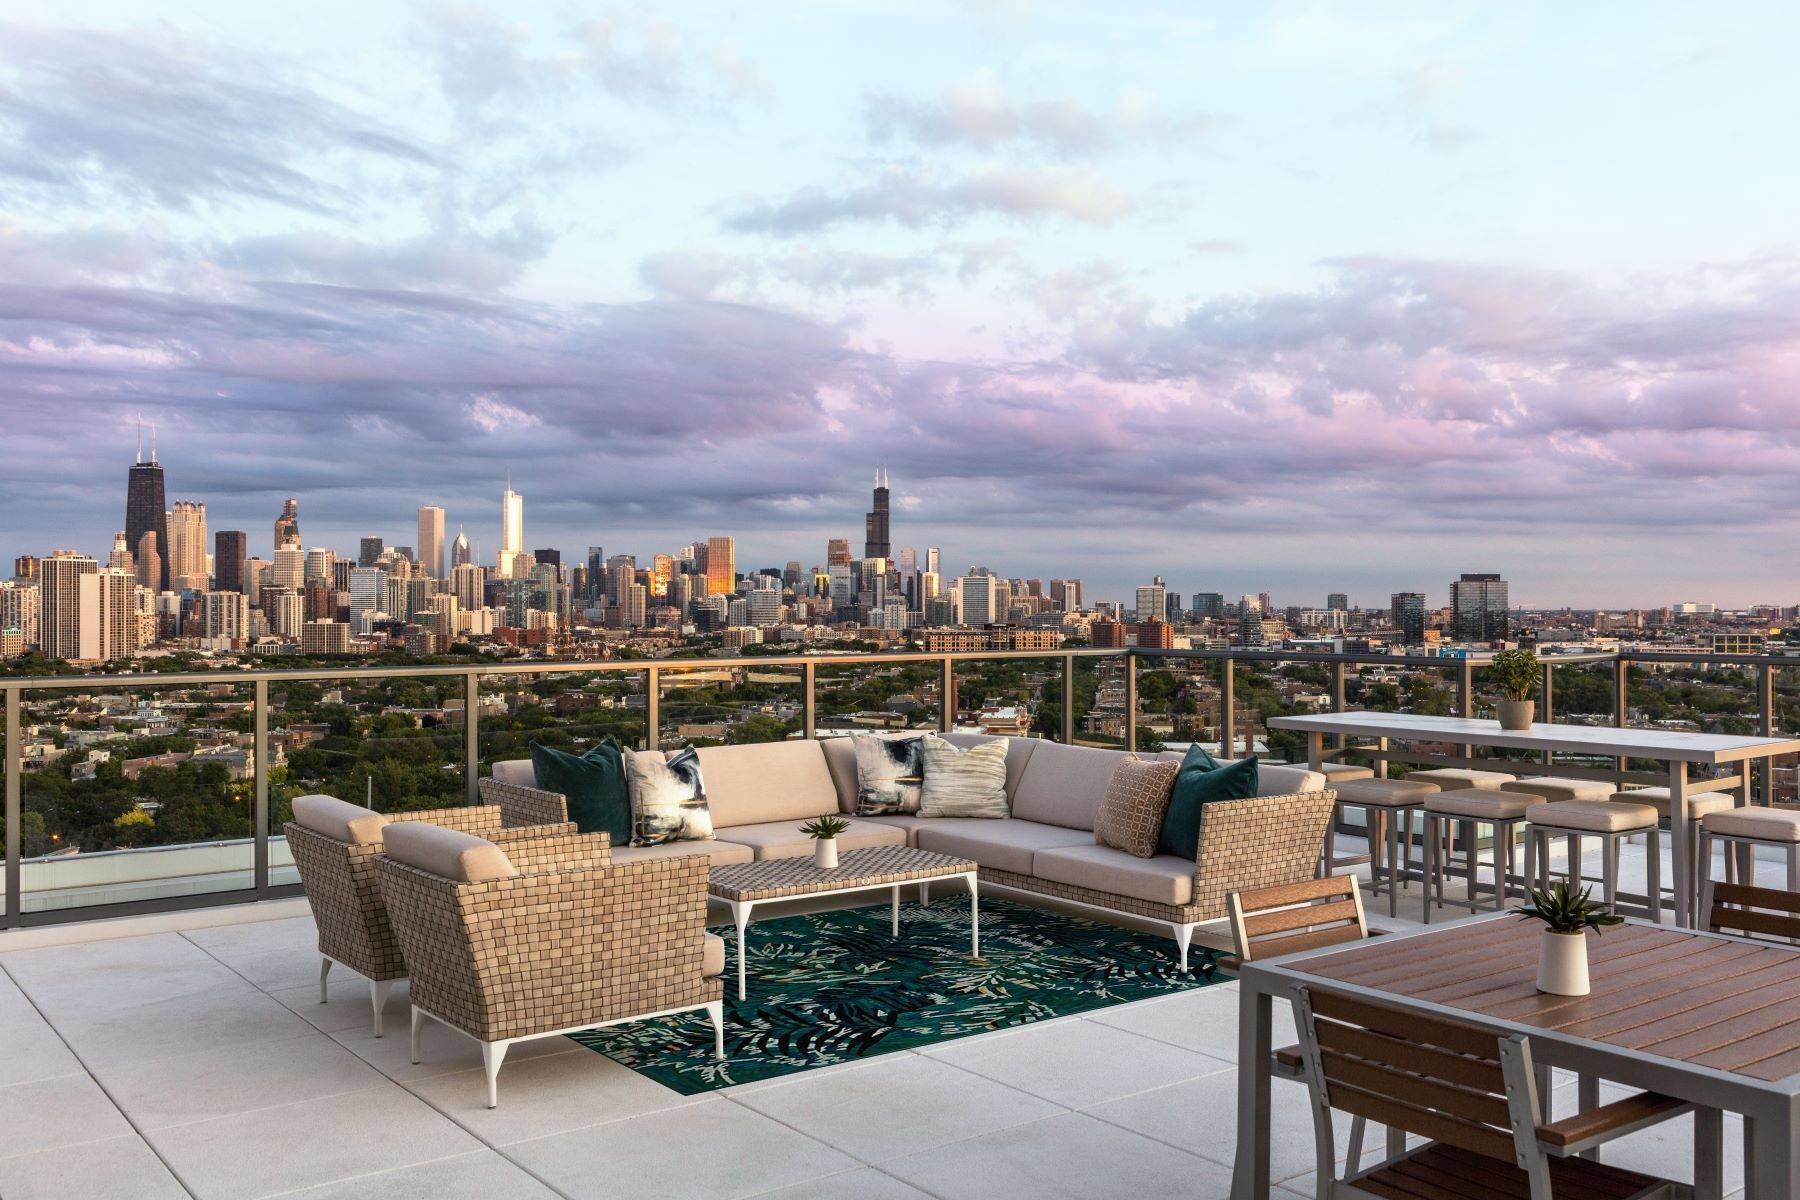 Condominiums for Sale at The Orchard Private Residences 2350 N Orchard Street, Unit 403 Chicago, Illinois 60614 United States